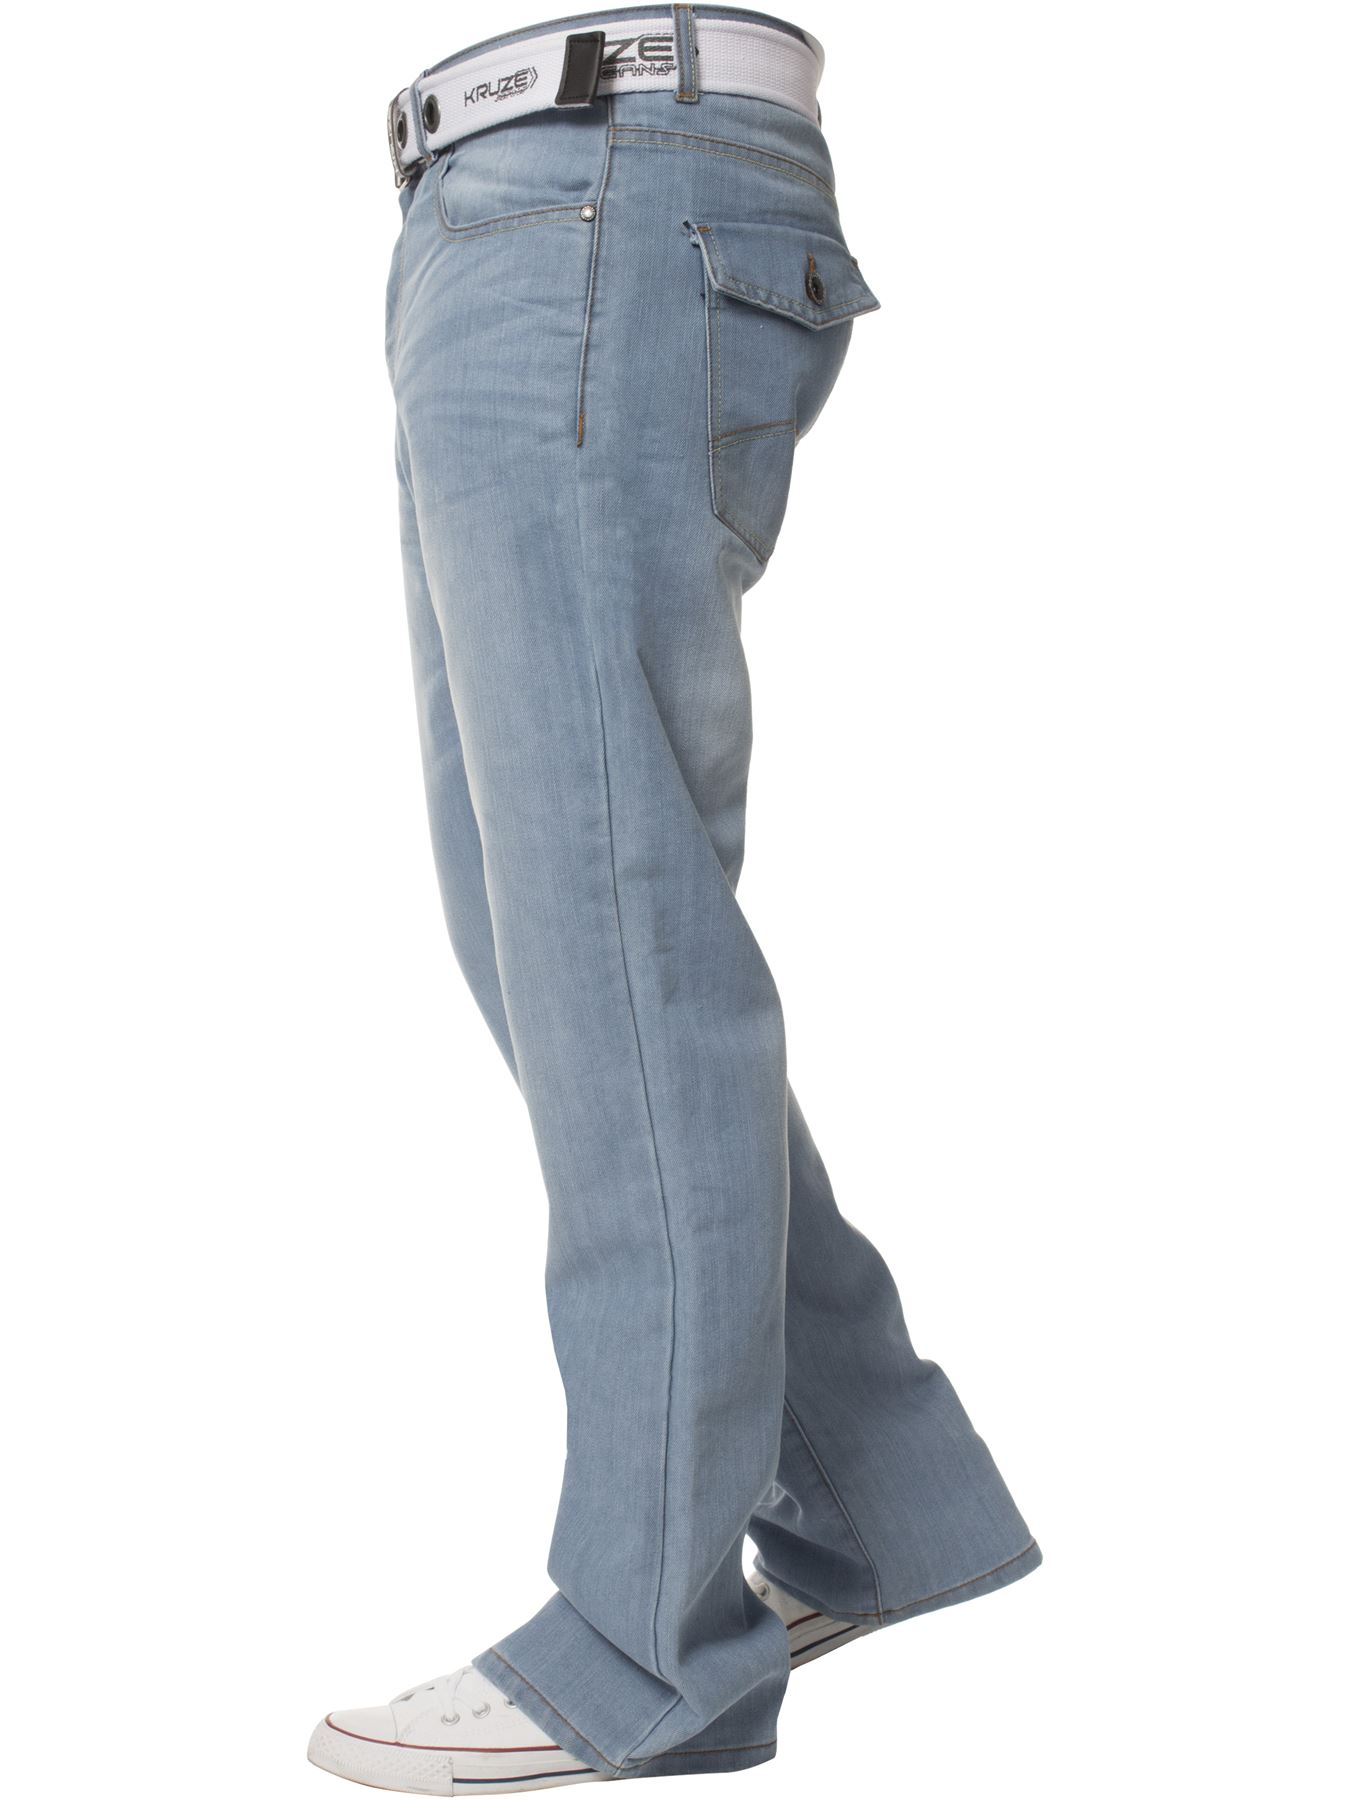 Kruze-Denim-New-Mens-Bootcut-Jeans-Wide-Leg-Flare-Pants-King-Big-All-Waist-Sizes thumbnail 16